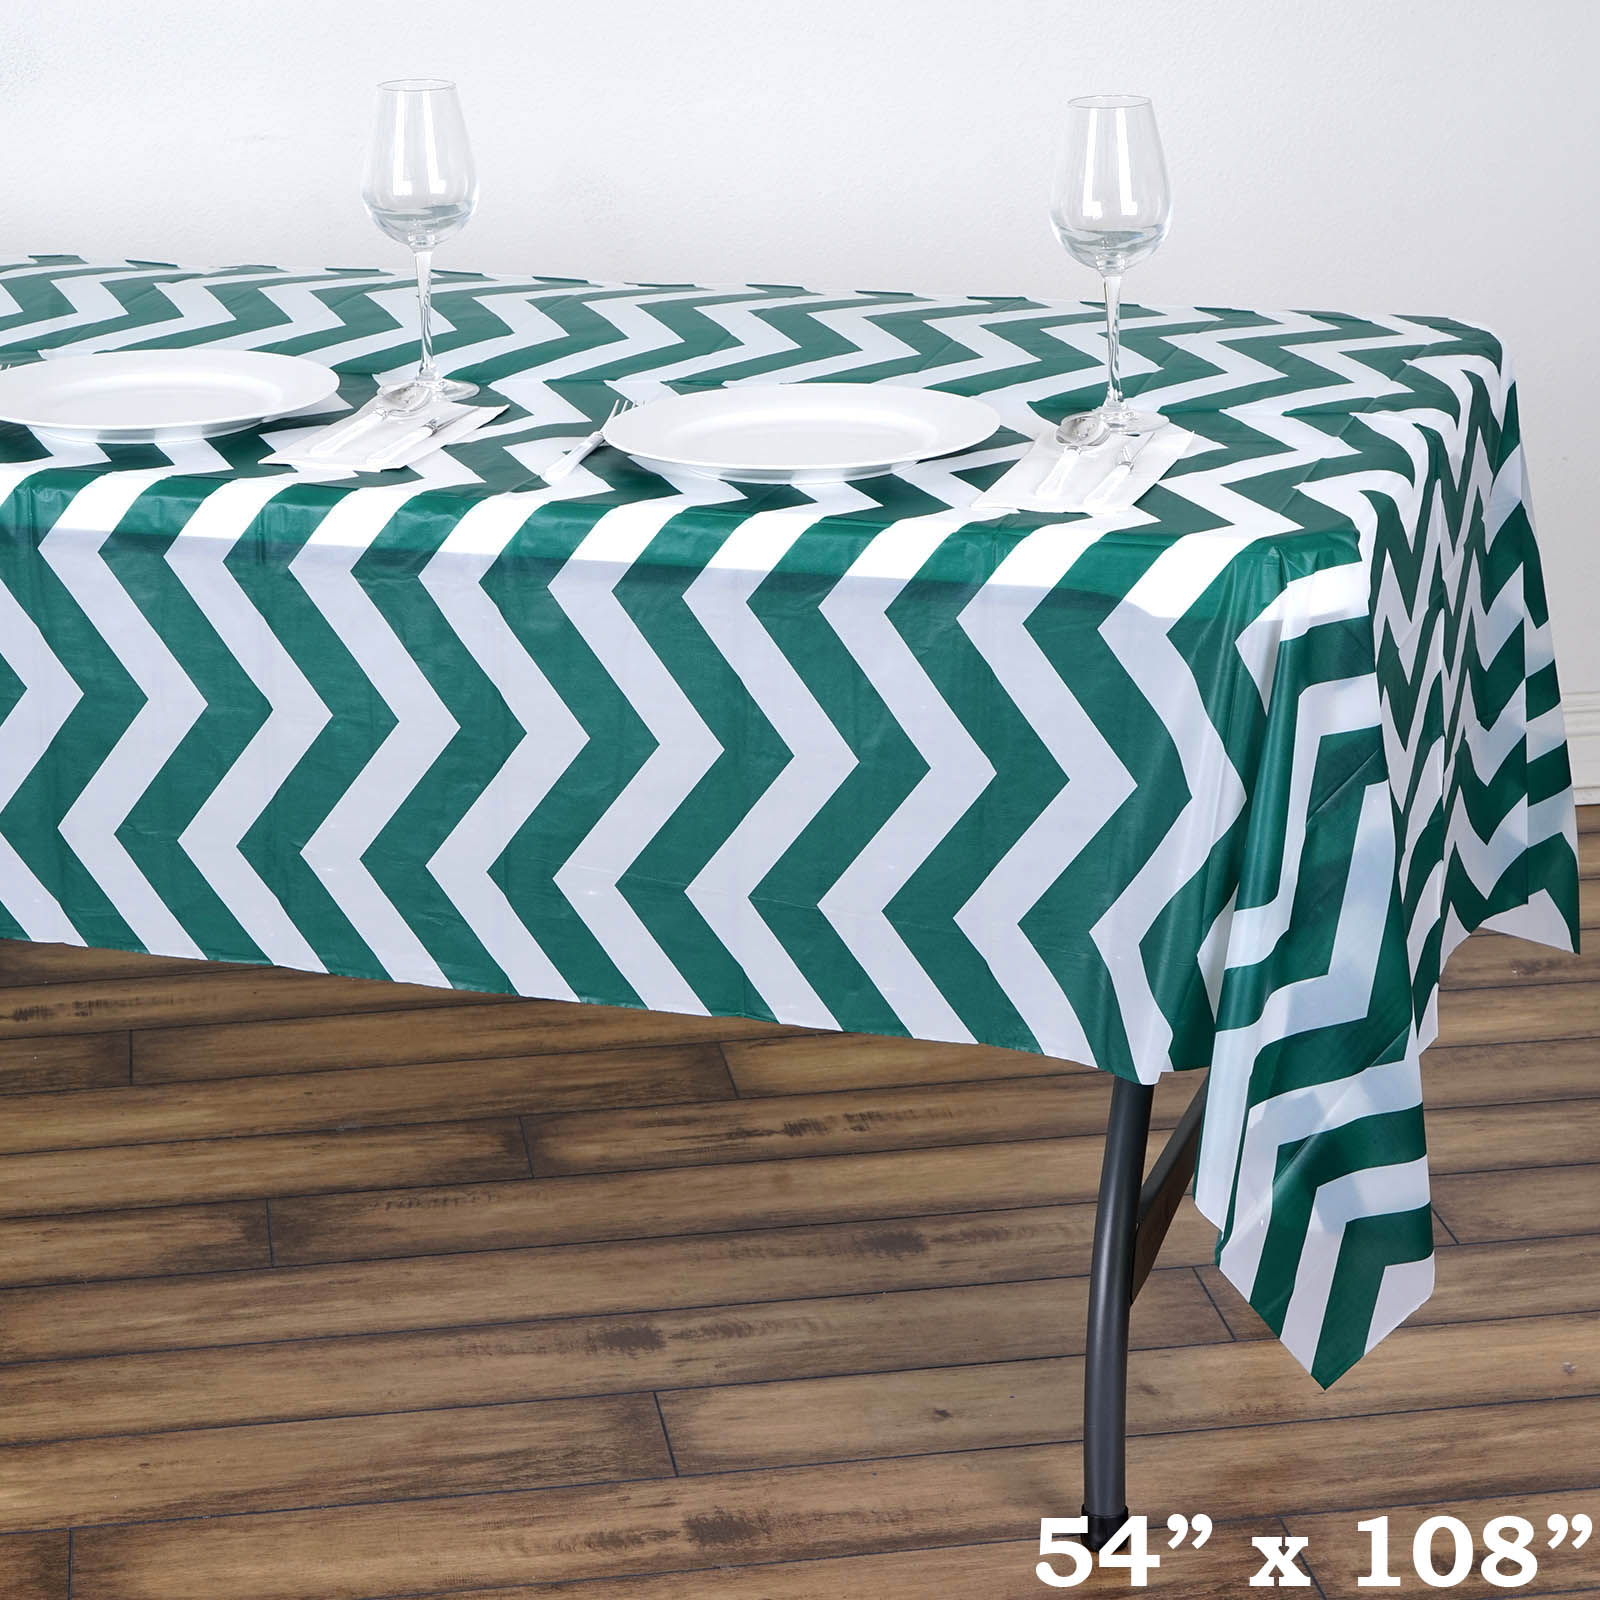 6 Pcs 54 X 108 Chevron Disposable Plastic Rectangular Table Covers